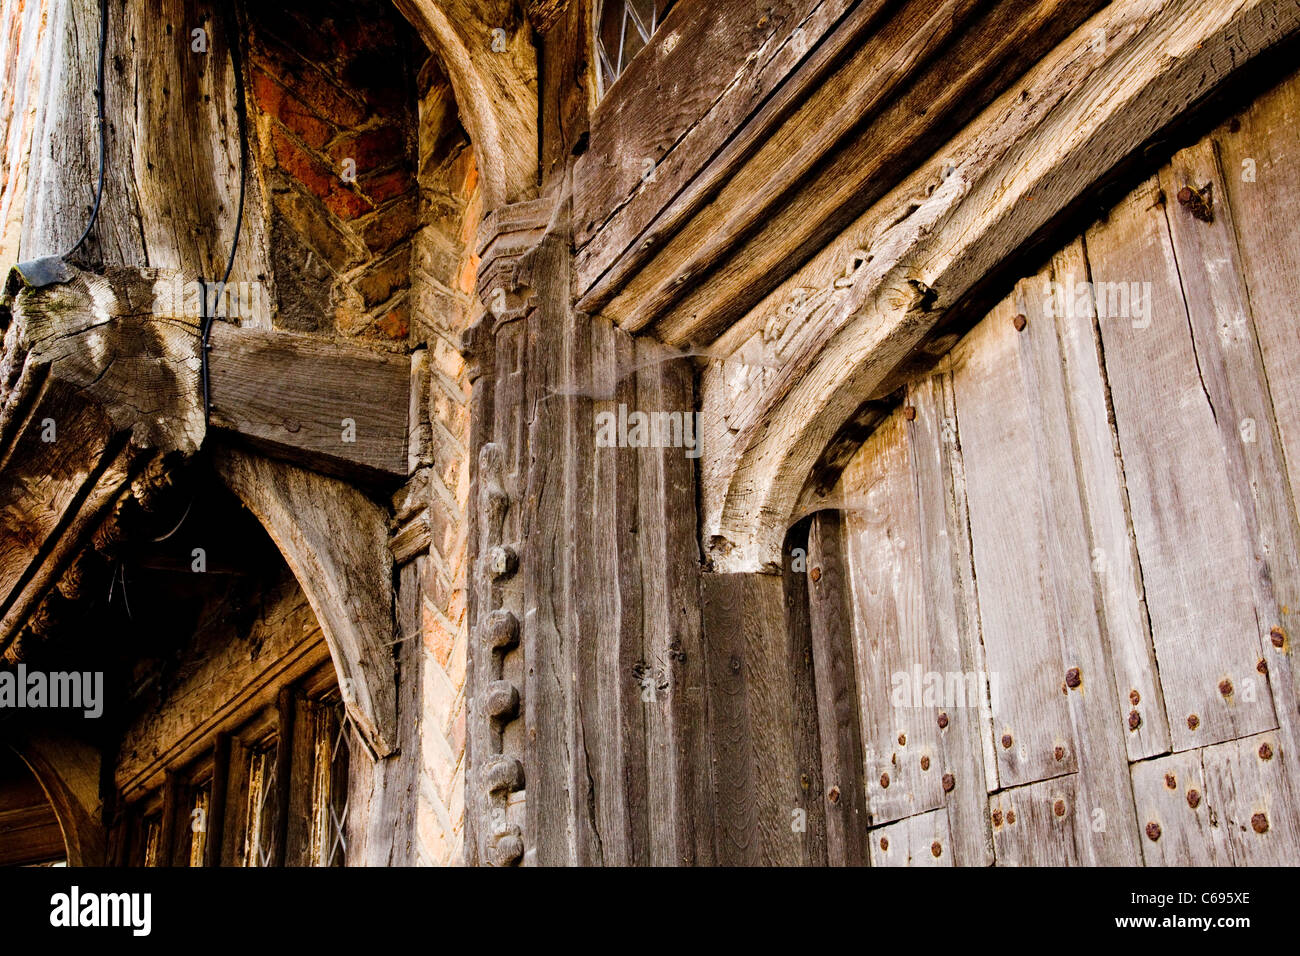 Ancient building, Lavenham Village, Suffolk England - Stock Image